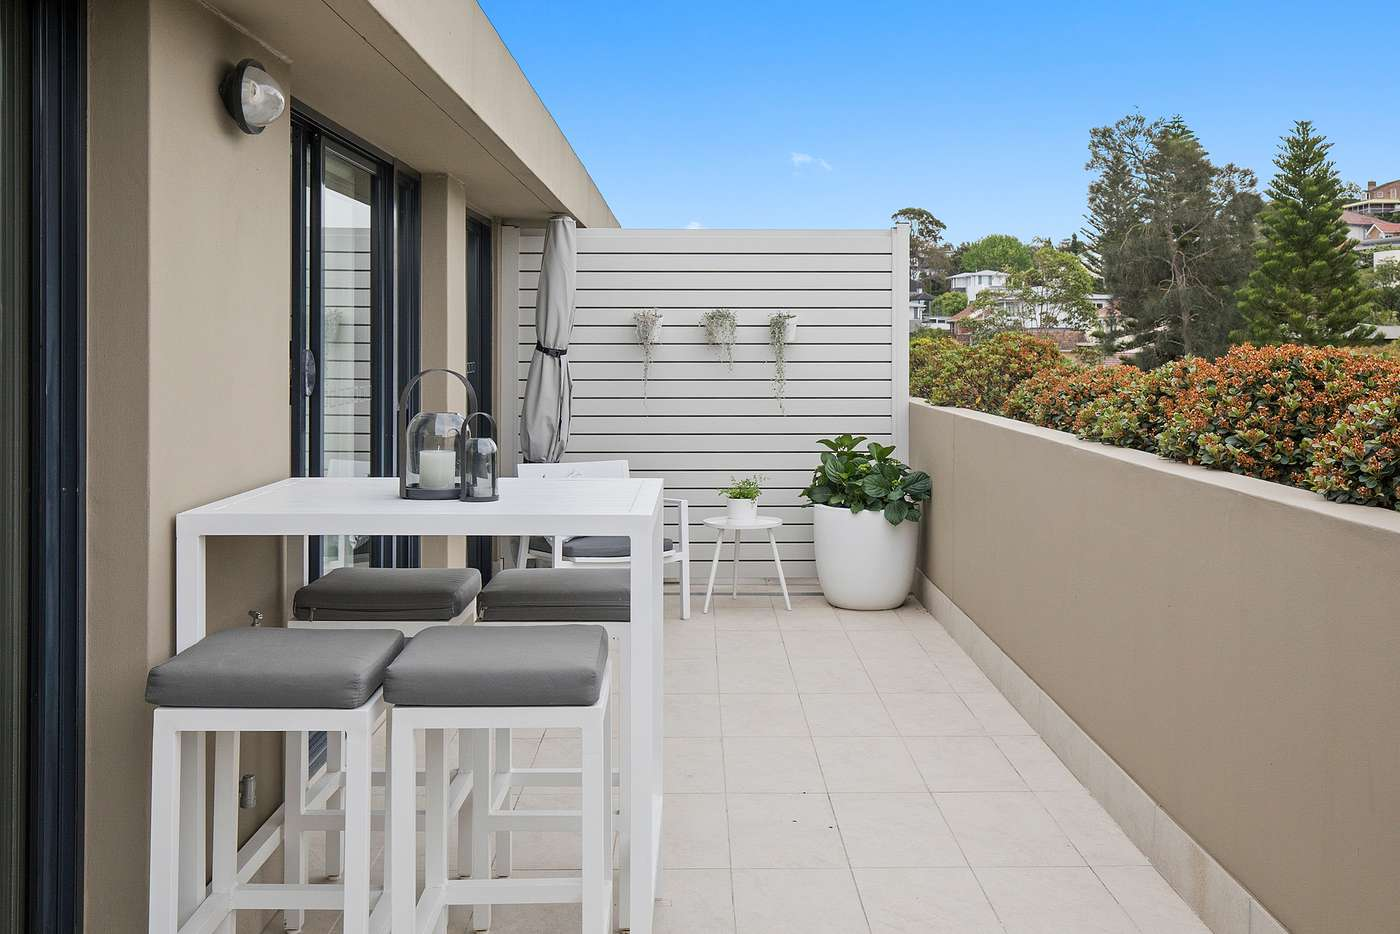 Sixth view of Homely apartment listing, 15/567 Sydney Road, Seaforth NSW 2092